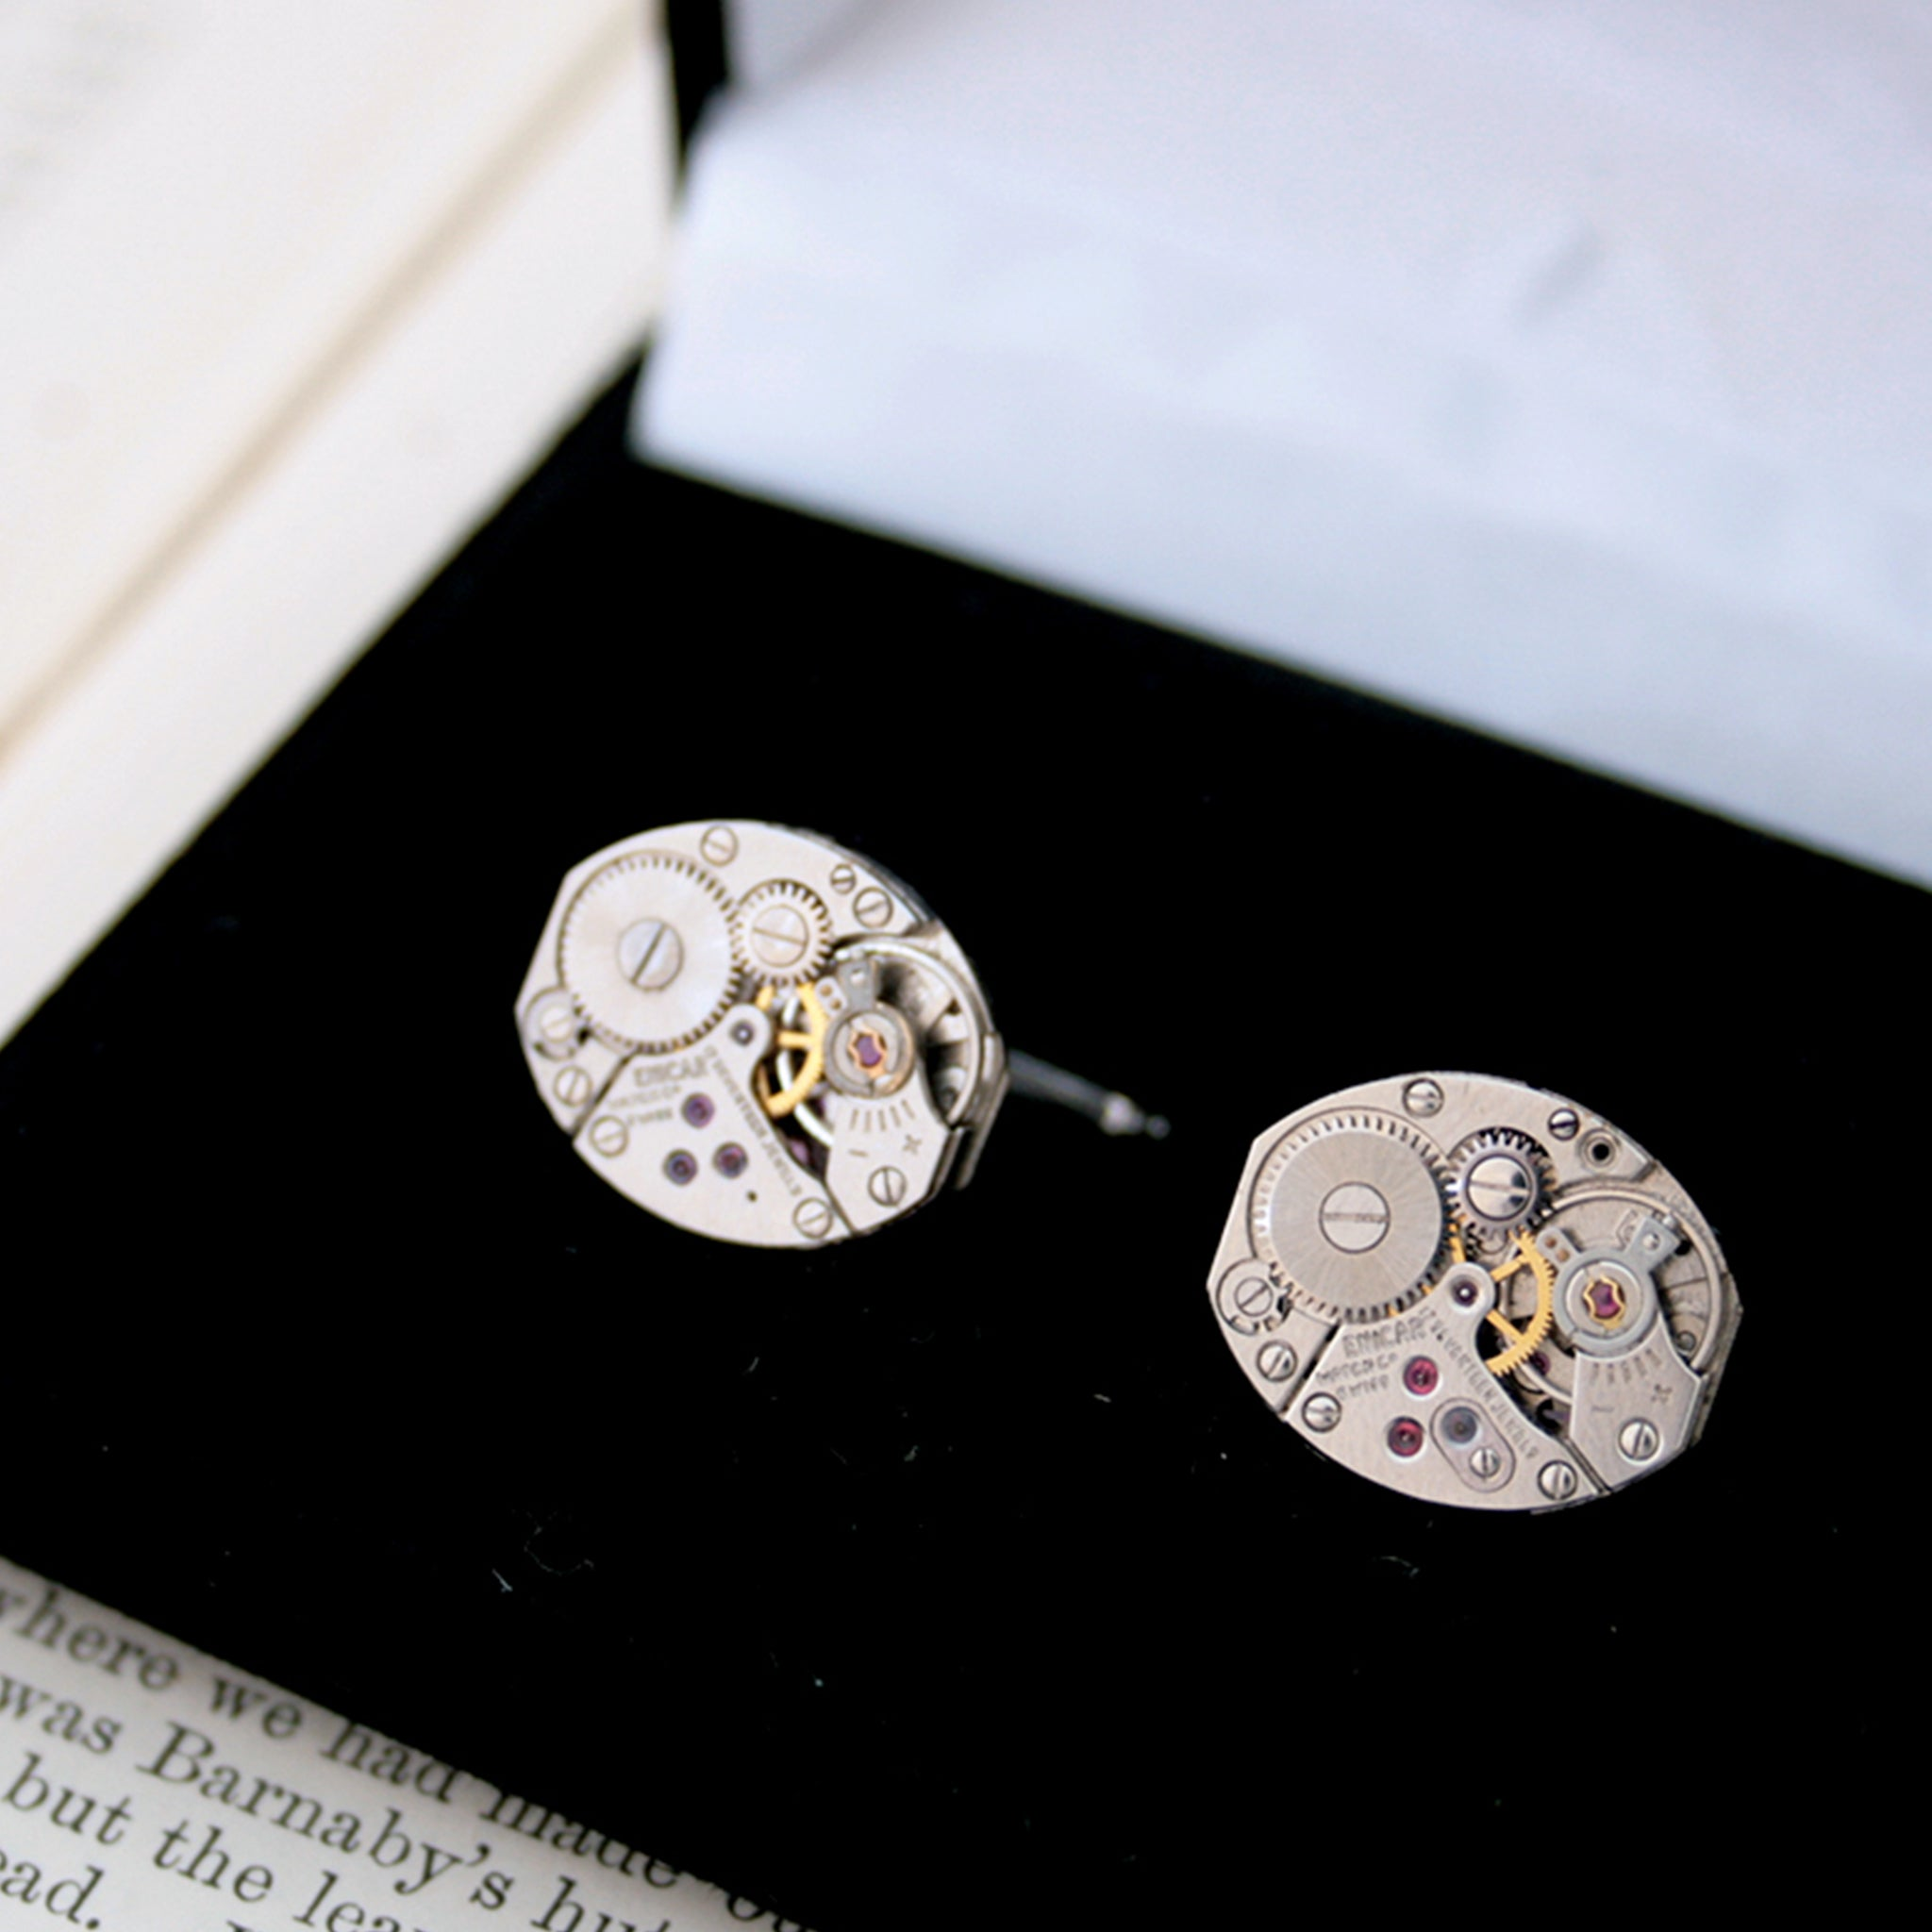 Steampunk Cufflinks in Silver in a box